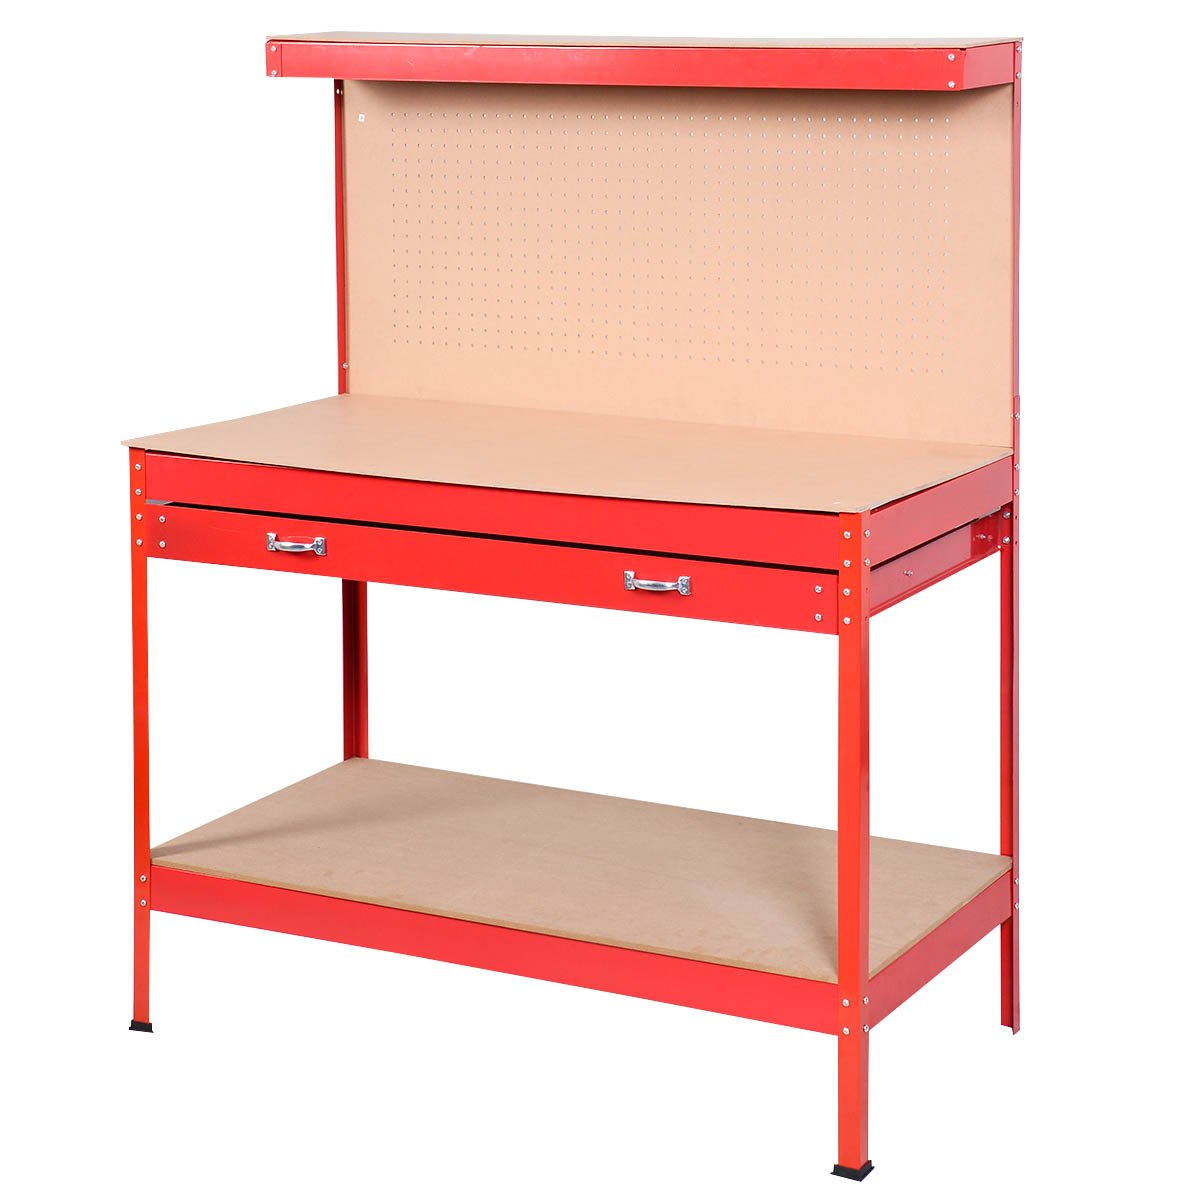 Goplus Steel Workbench Tool Storage Work Bench Workshop Tools Table W/ Drawer and Peg Board,Red